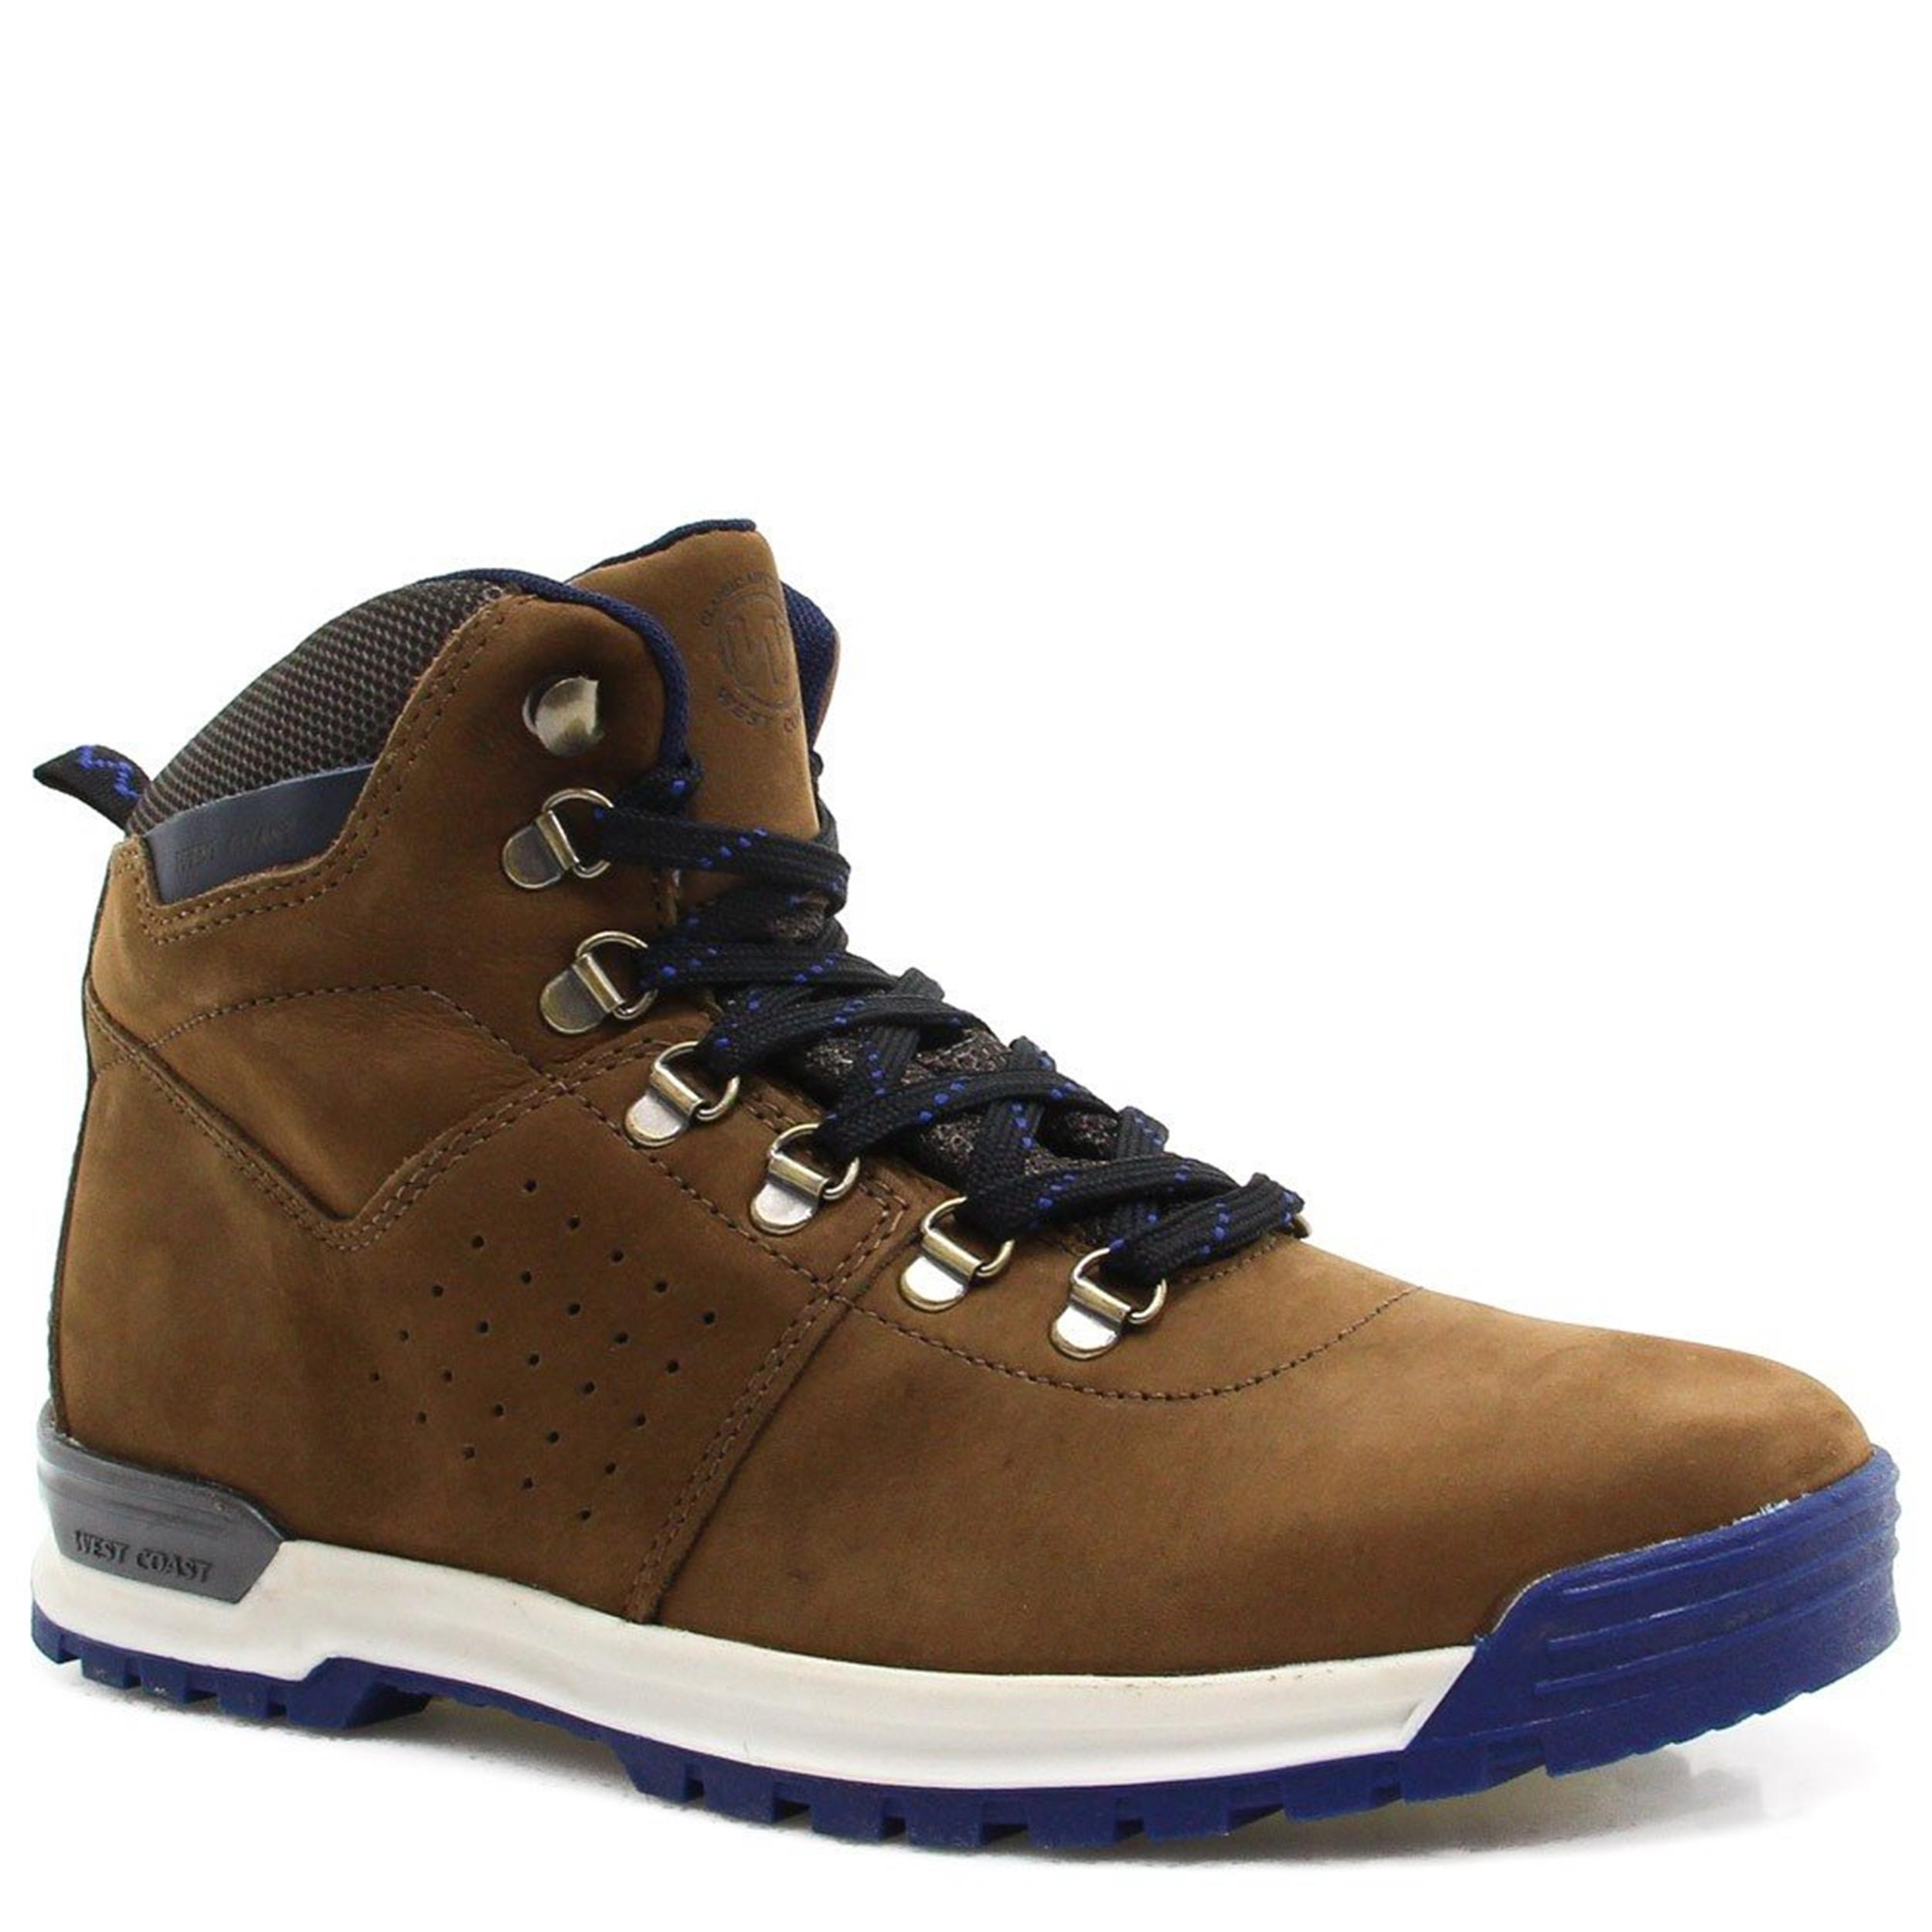 Bota West Coast Casual Cano Curto